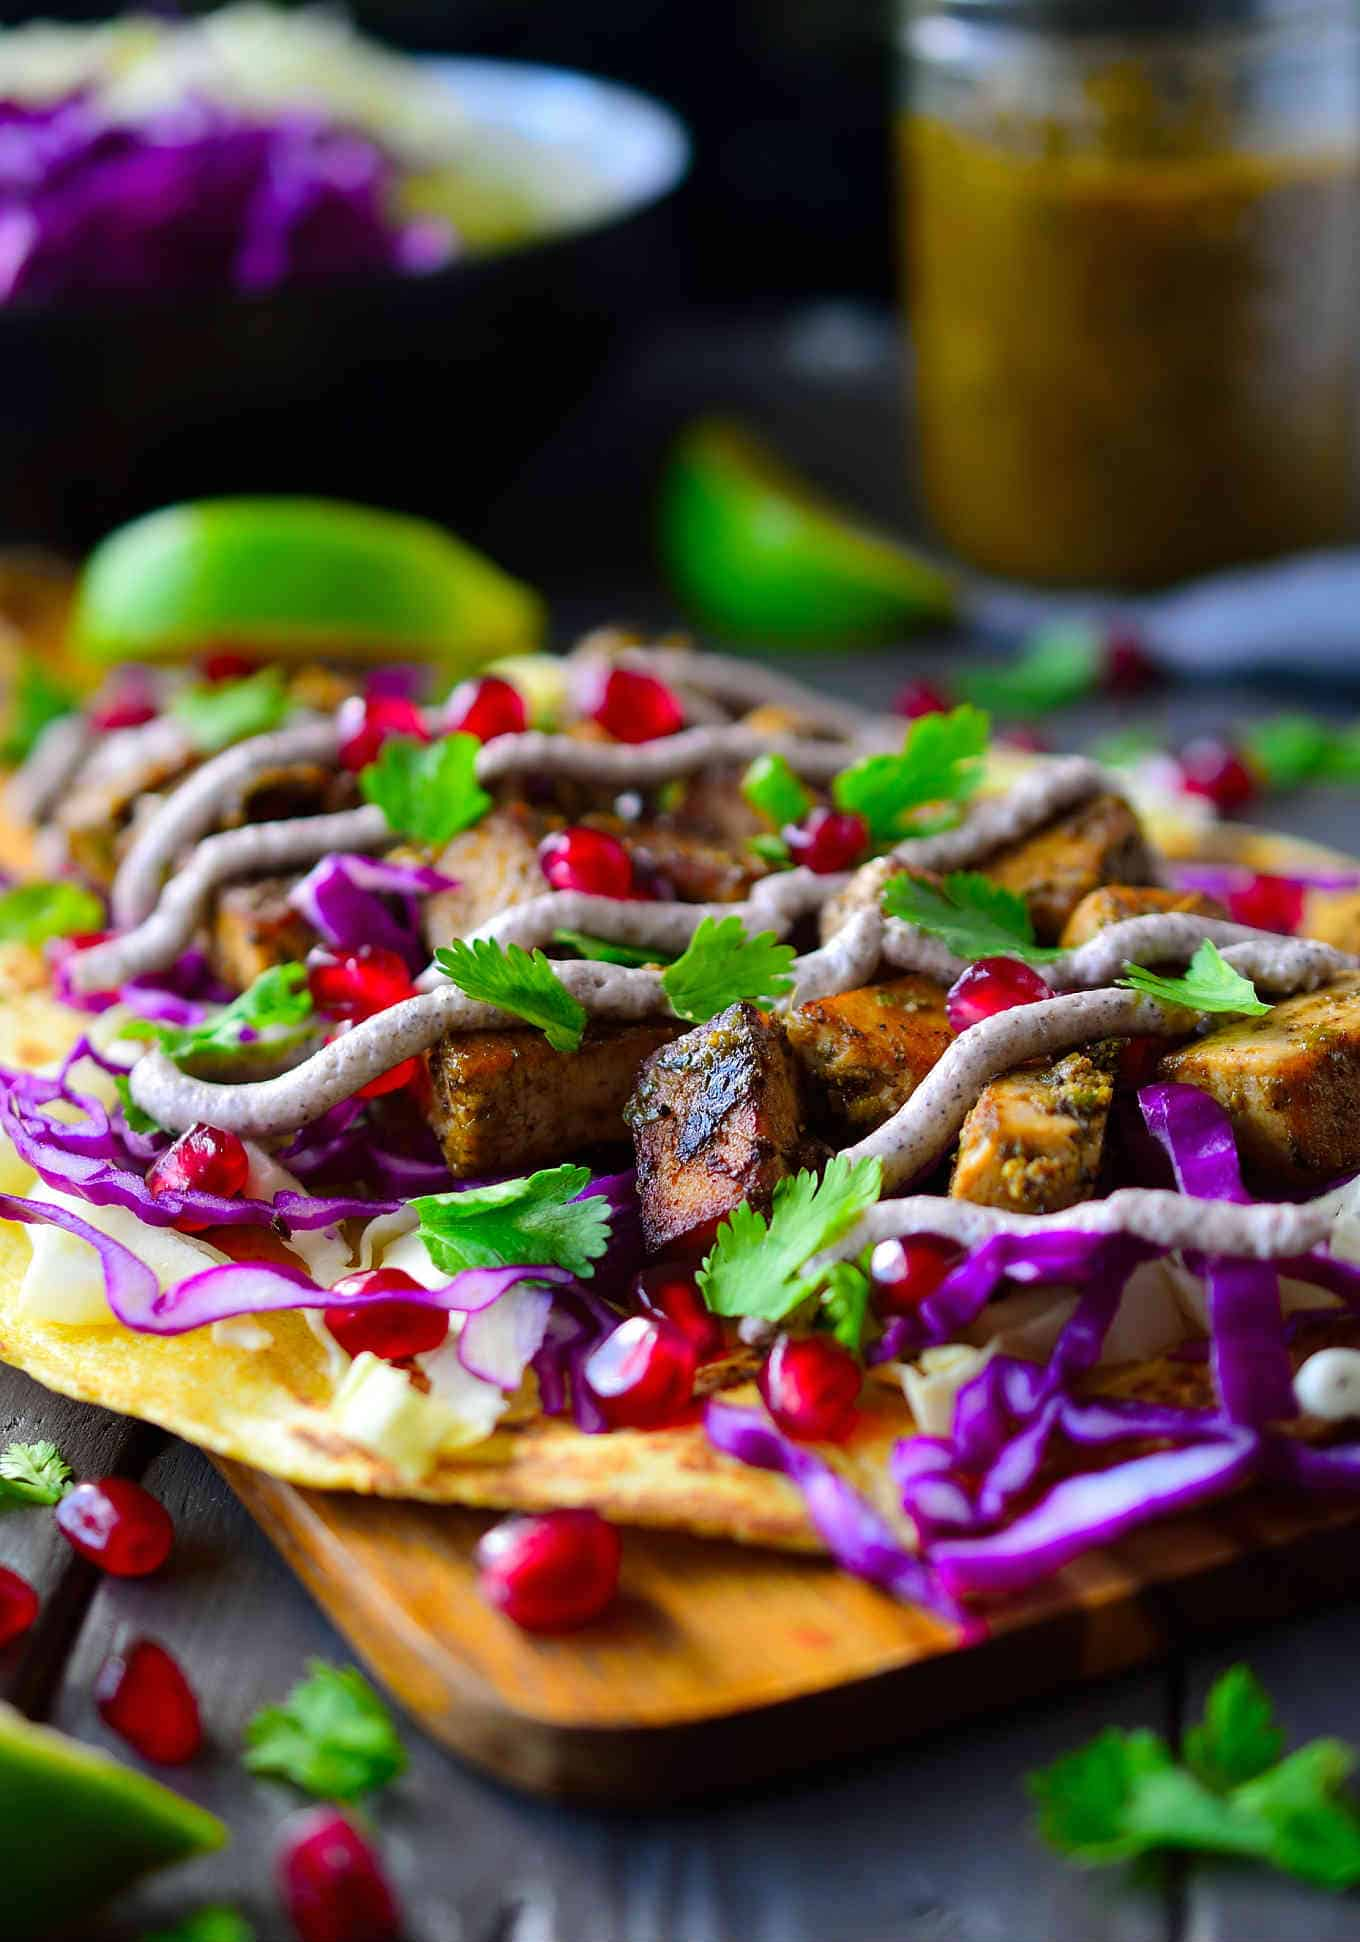 #Vegan jerk tacos